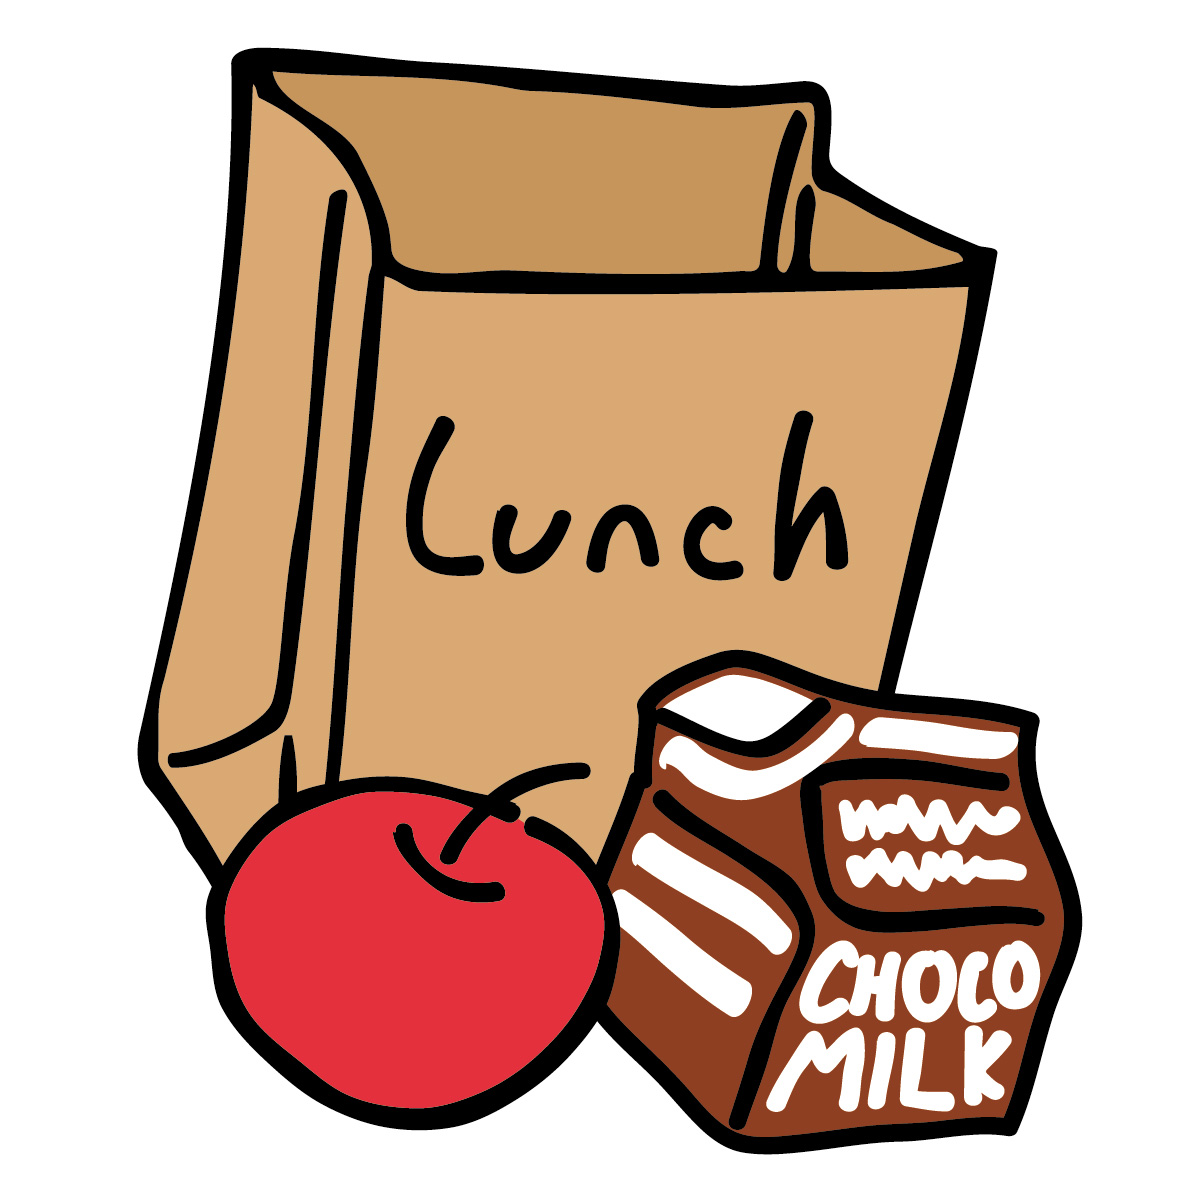 Lunch clip art free clipart image